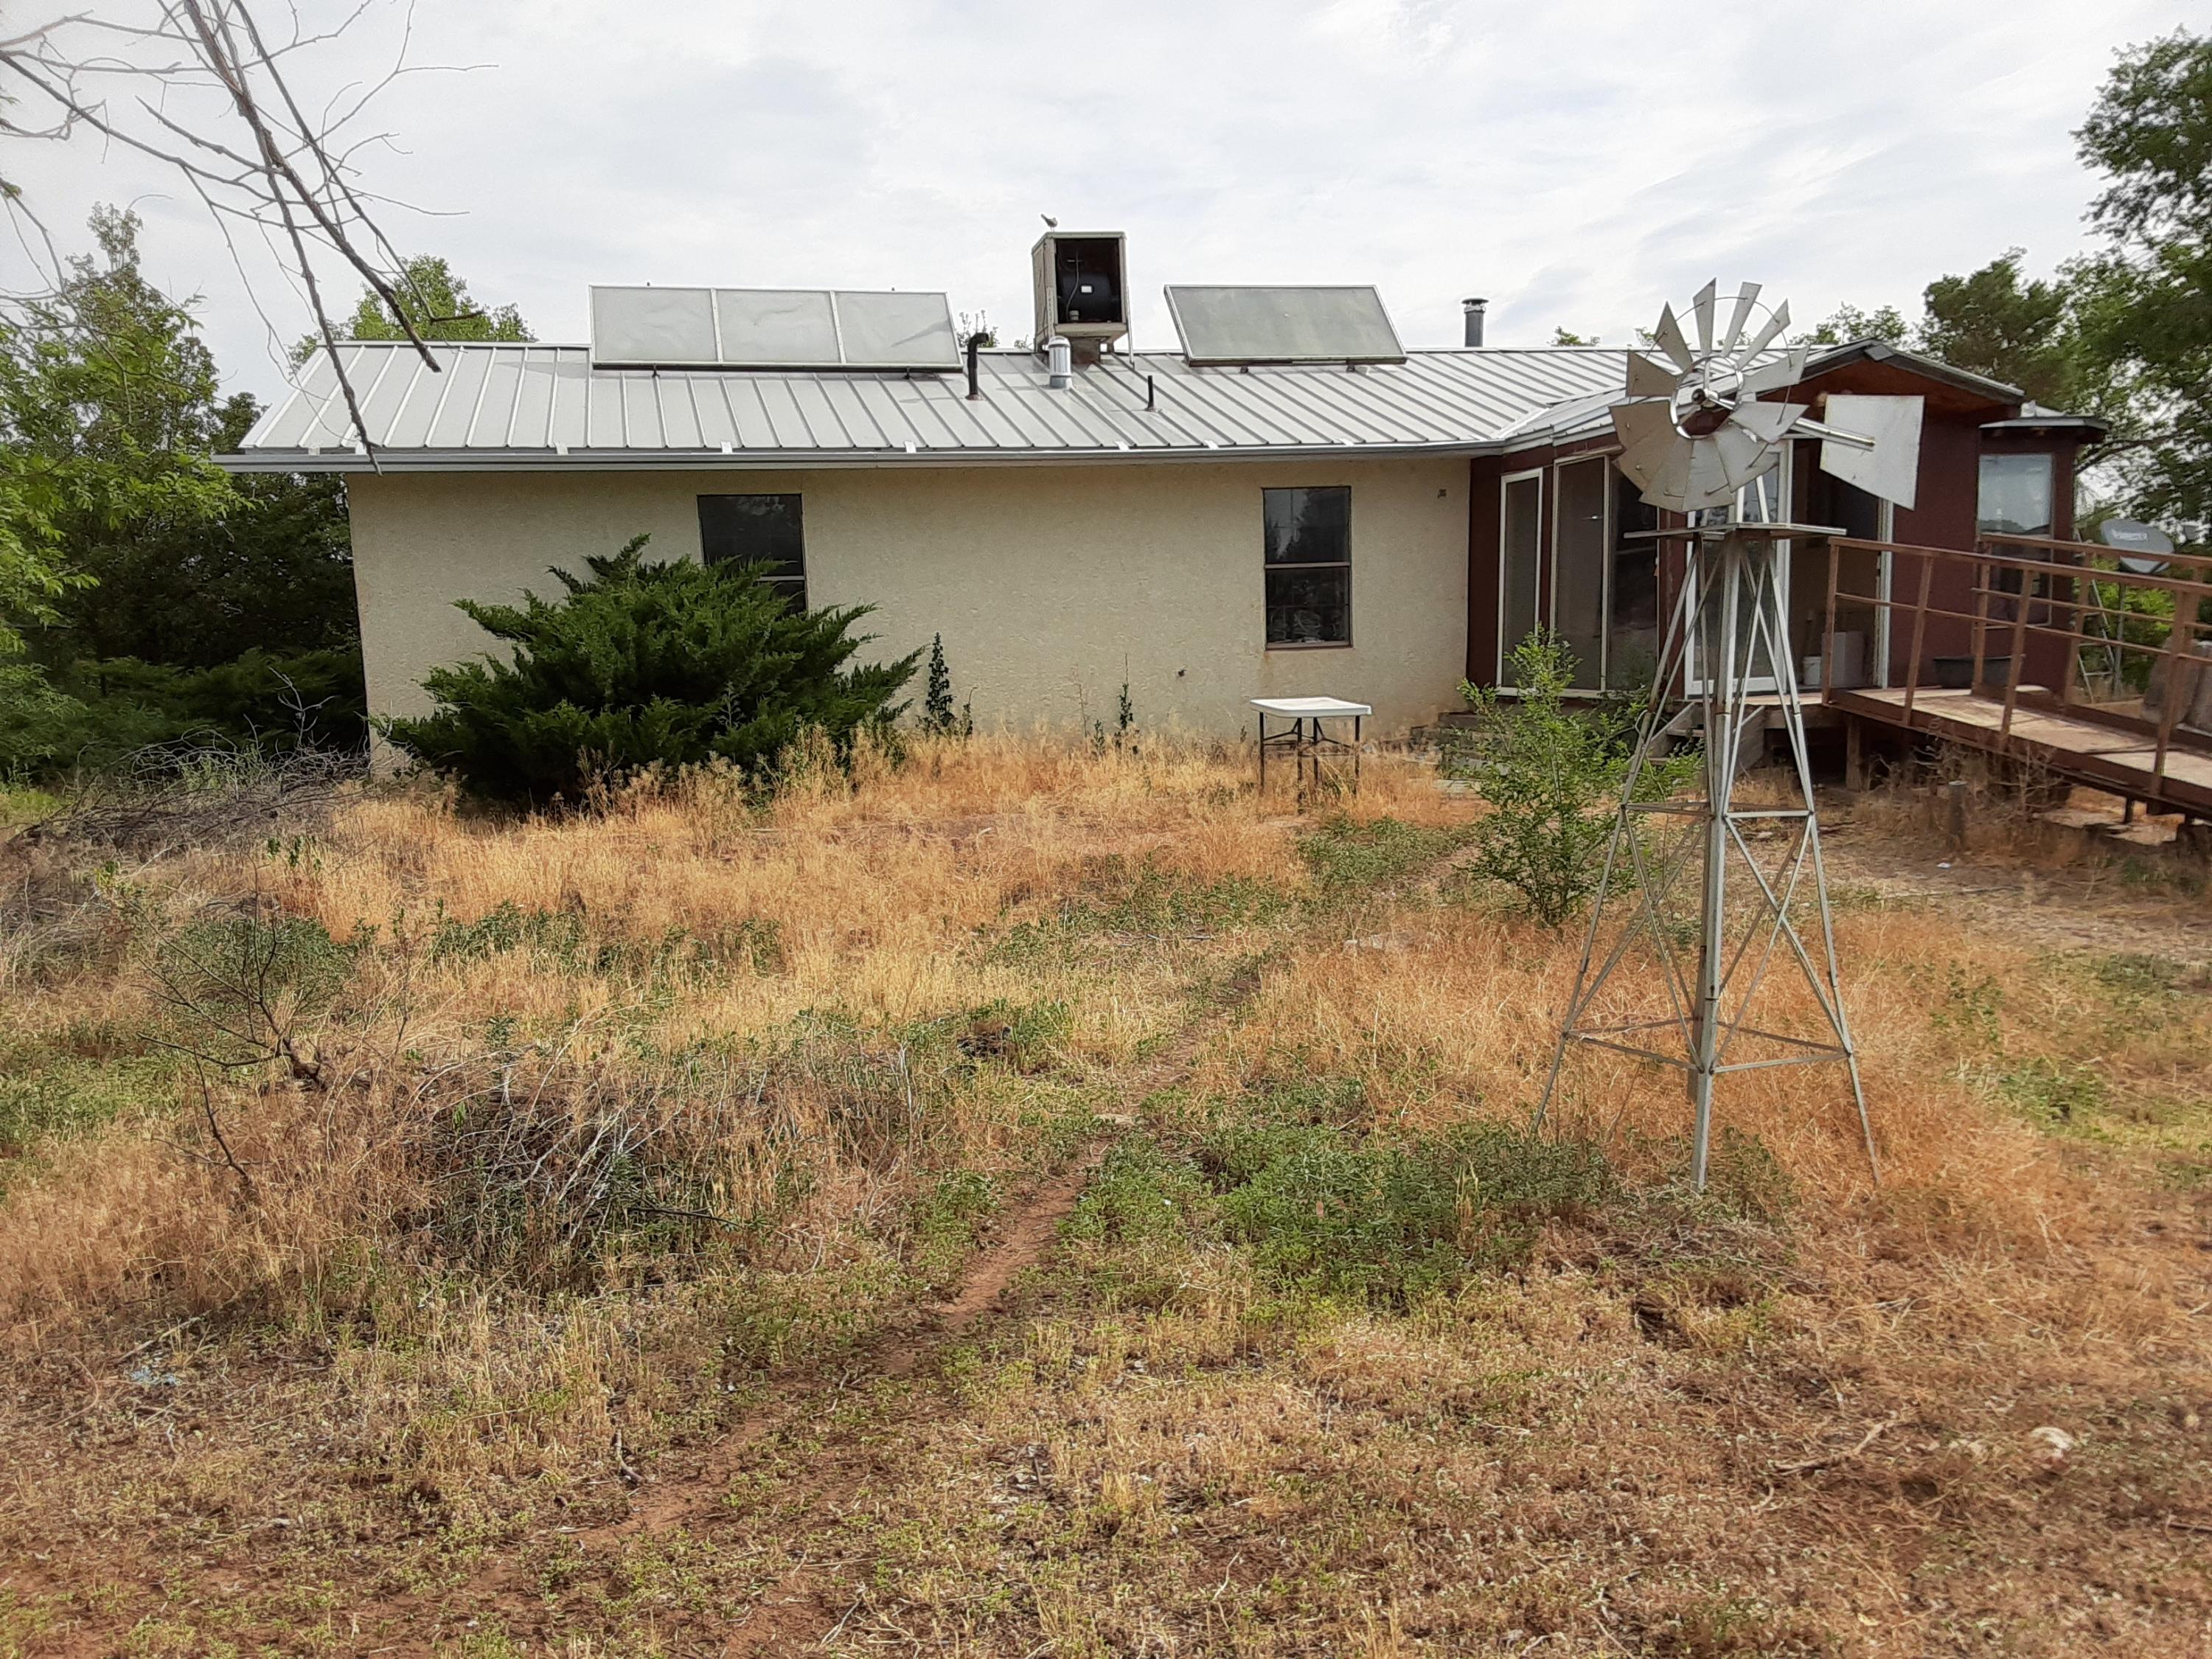 Home is on 5 acres plus 2 additional lots of 1.25 acres each, all together totaling  7.5 acres. Home is going through transition. Clean up will be done before closing.